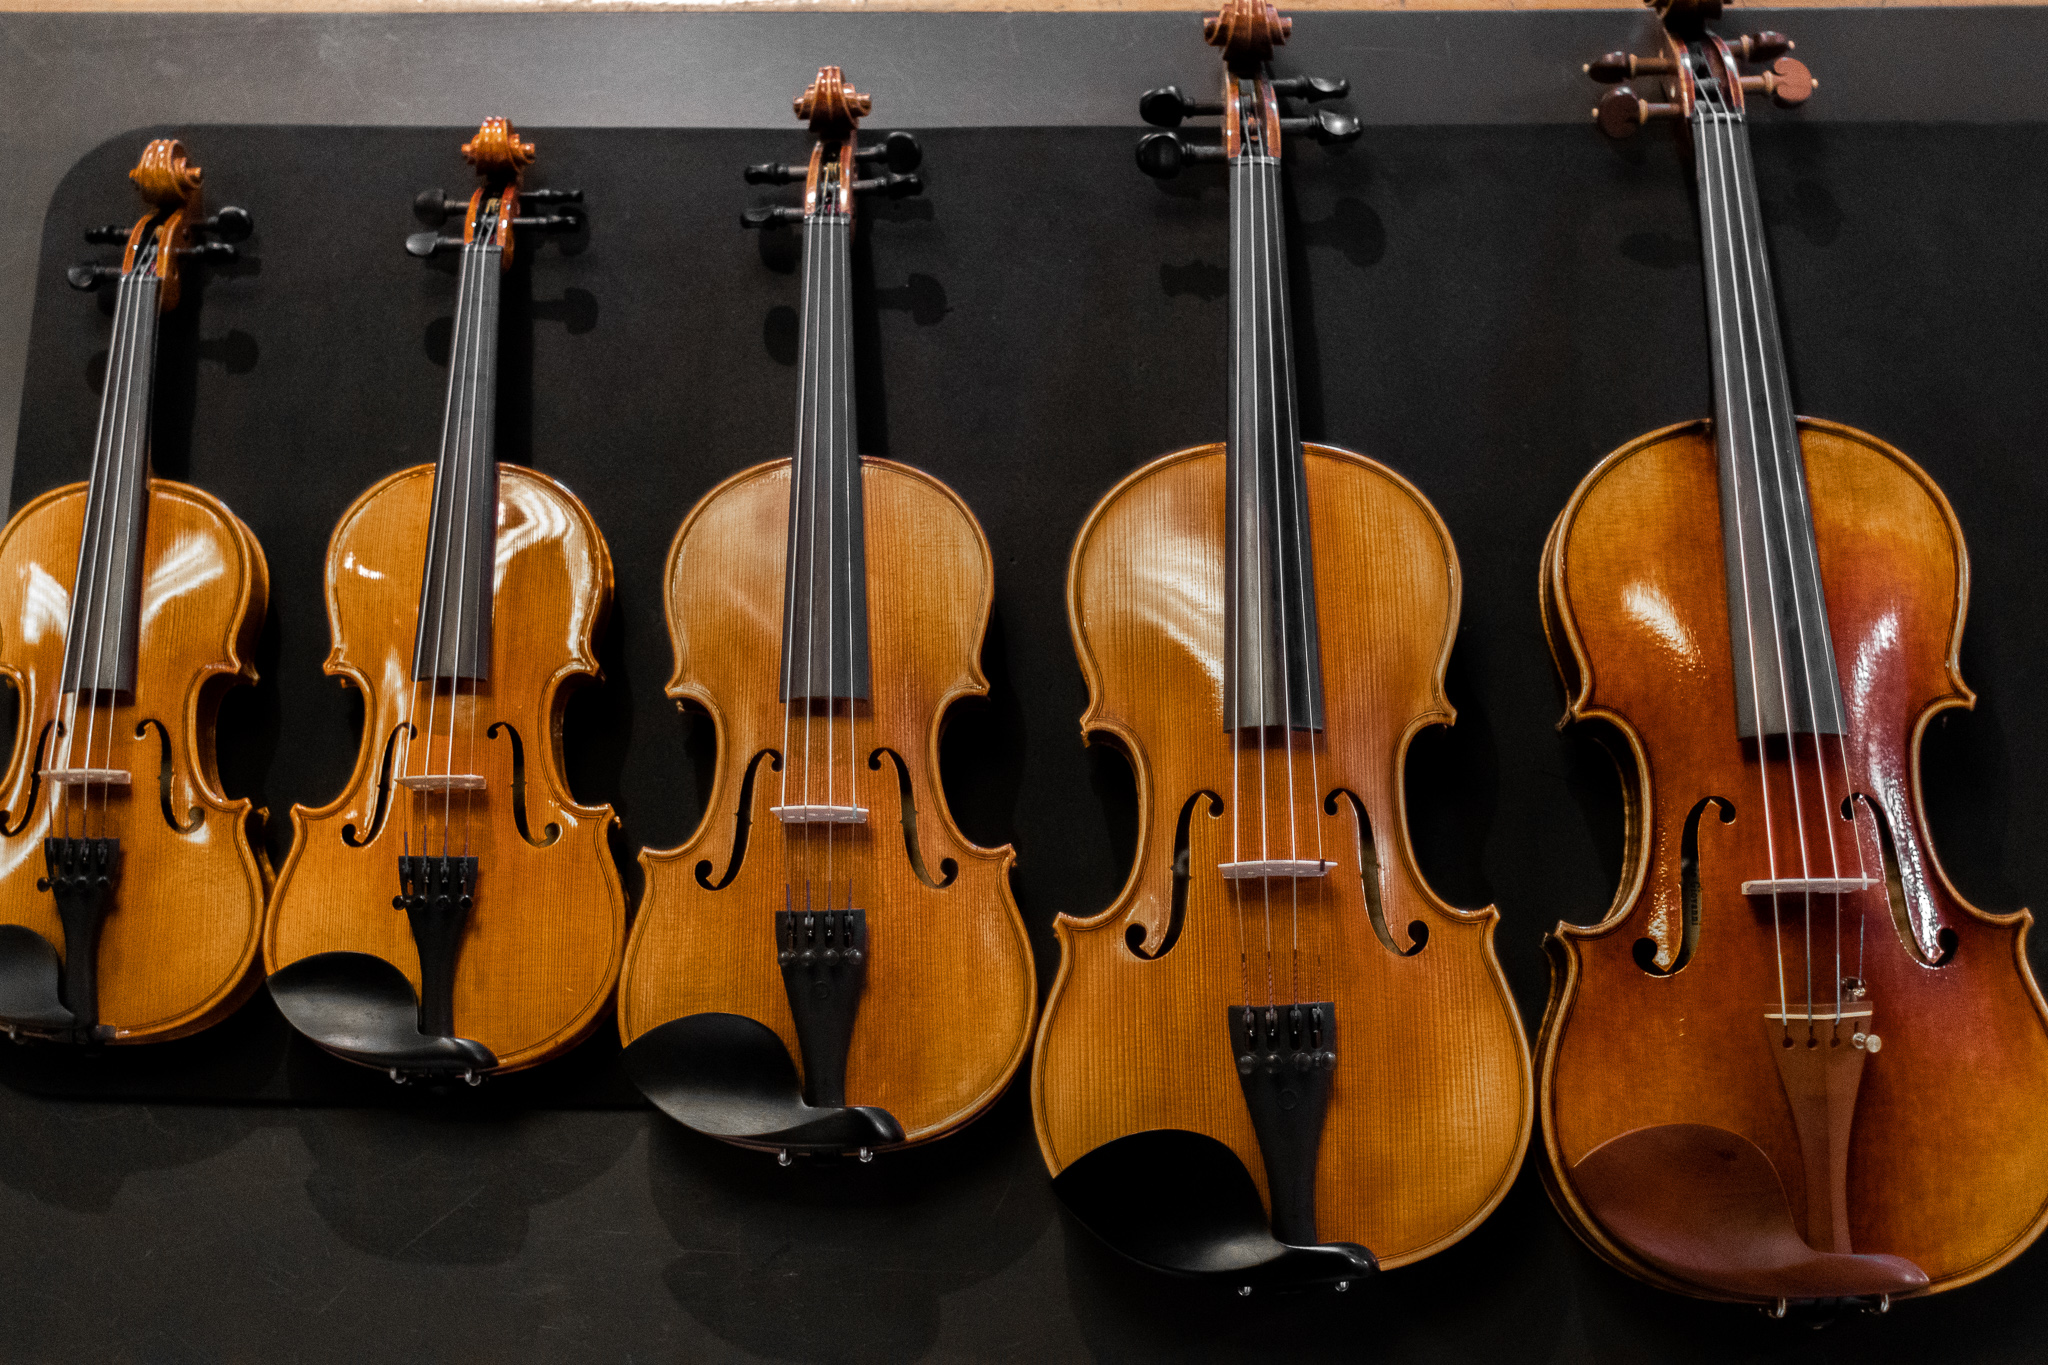 a photo comparing the different fractional sizes of violins that Amro carries